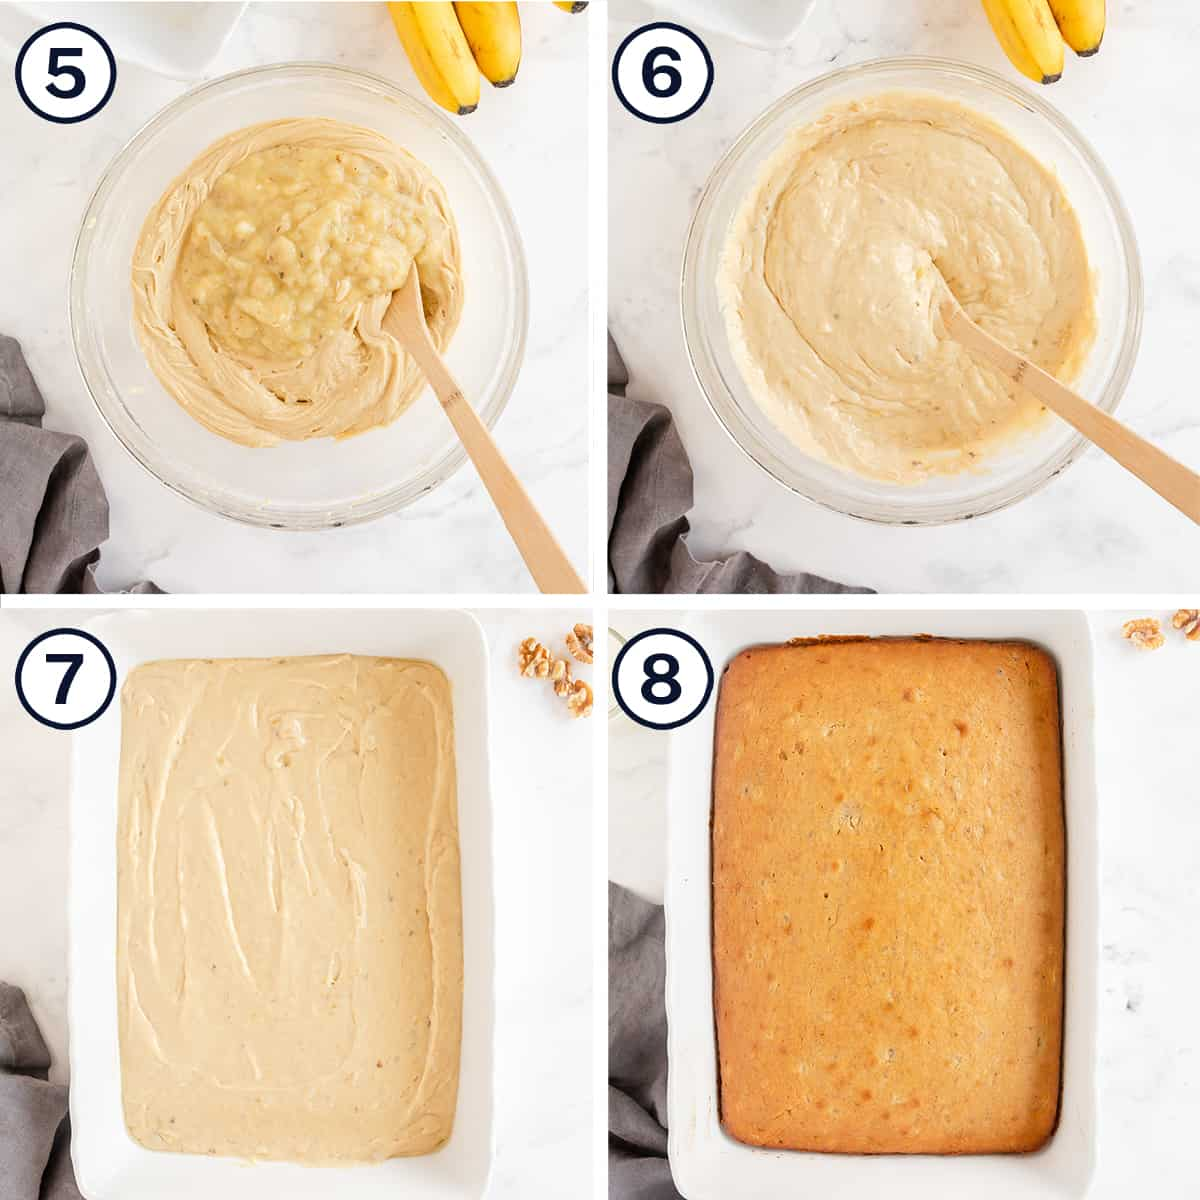 Cake batter is mixed in a bowl and baked in a baking dish.